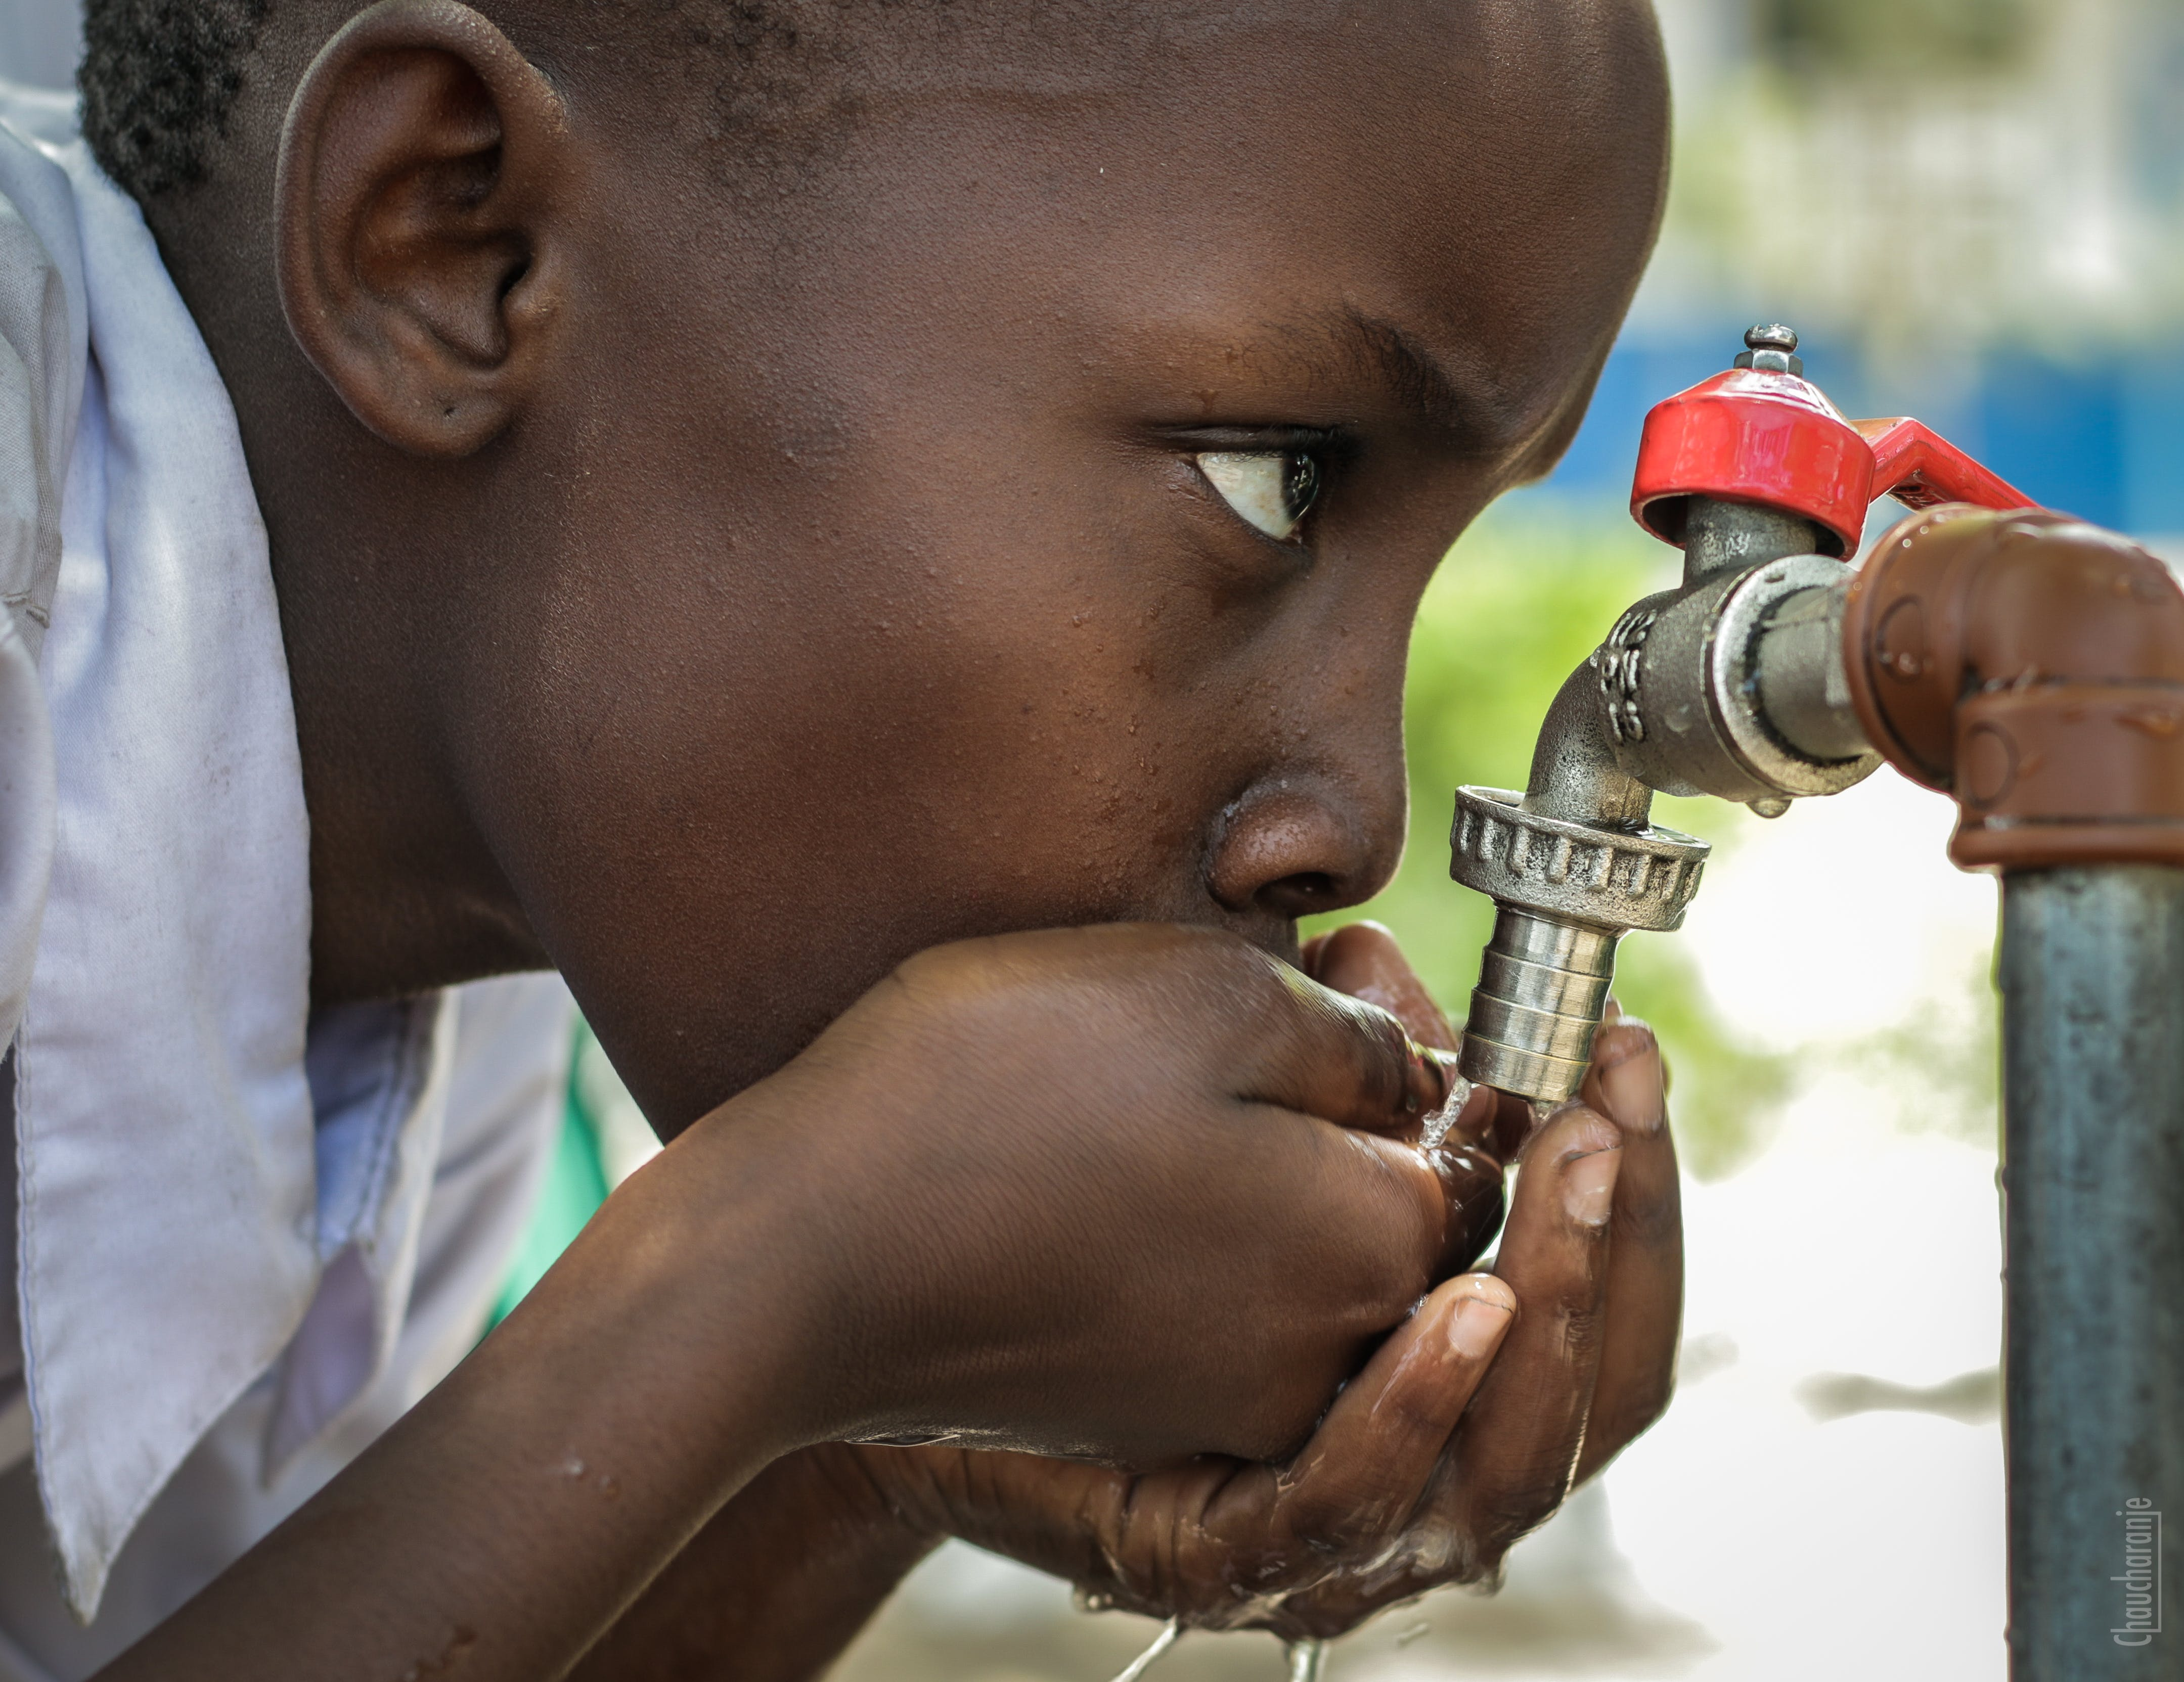 Boy Drinking Water on Faucet